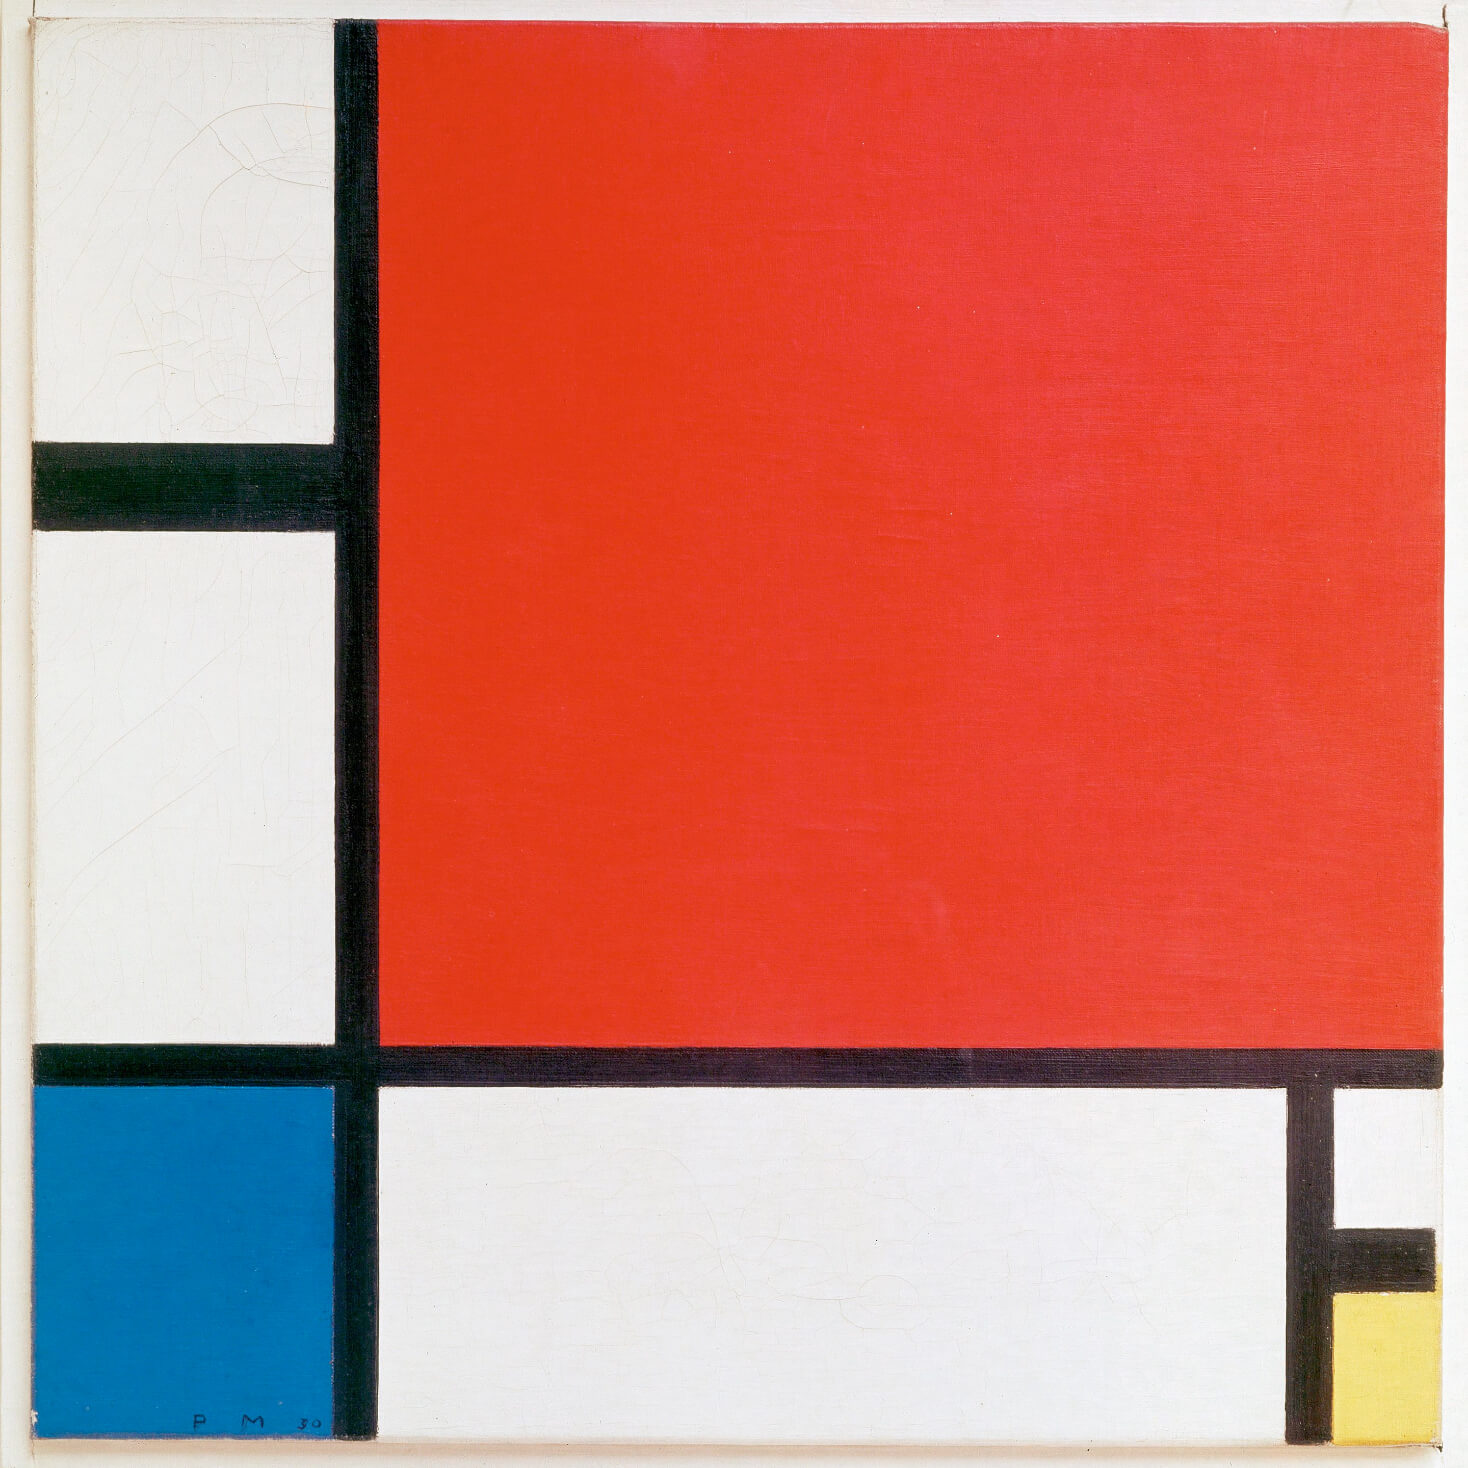 Composition with Red Blue and Yellow by Piet Mondrian